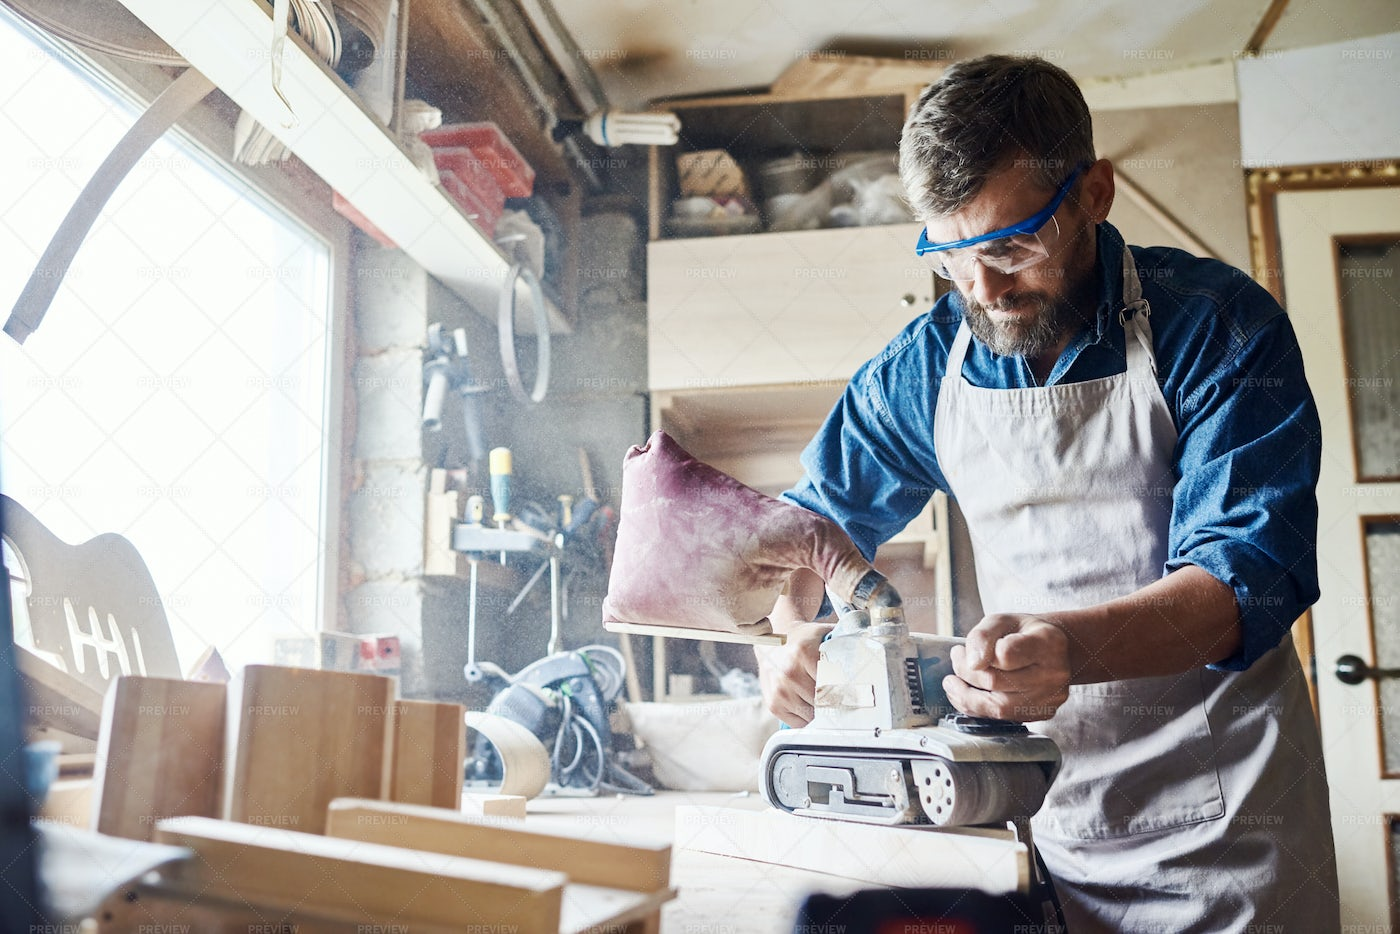 Concentrated Carpenter With Belt...: Stock Photos